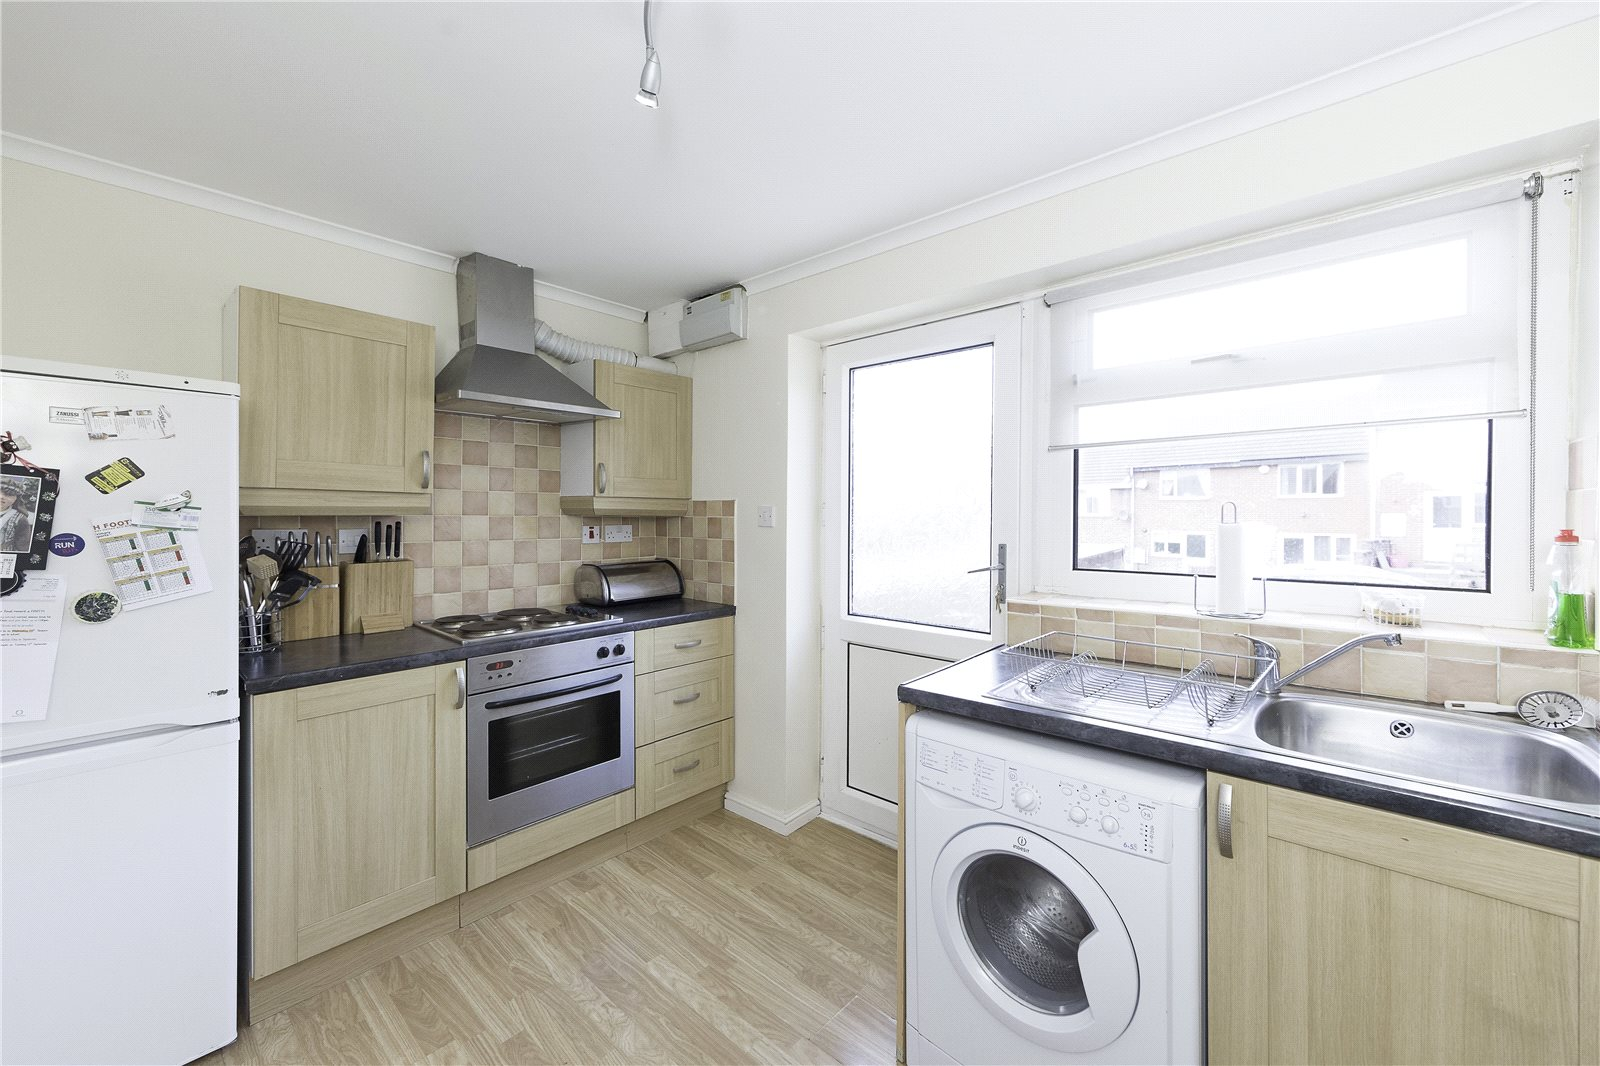 Whitegates bramley 2 bedroom house for sale in bath road for Perfect kitchen bramley